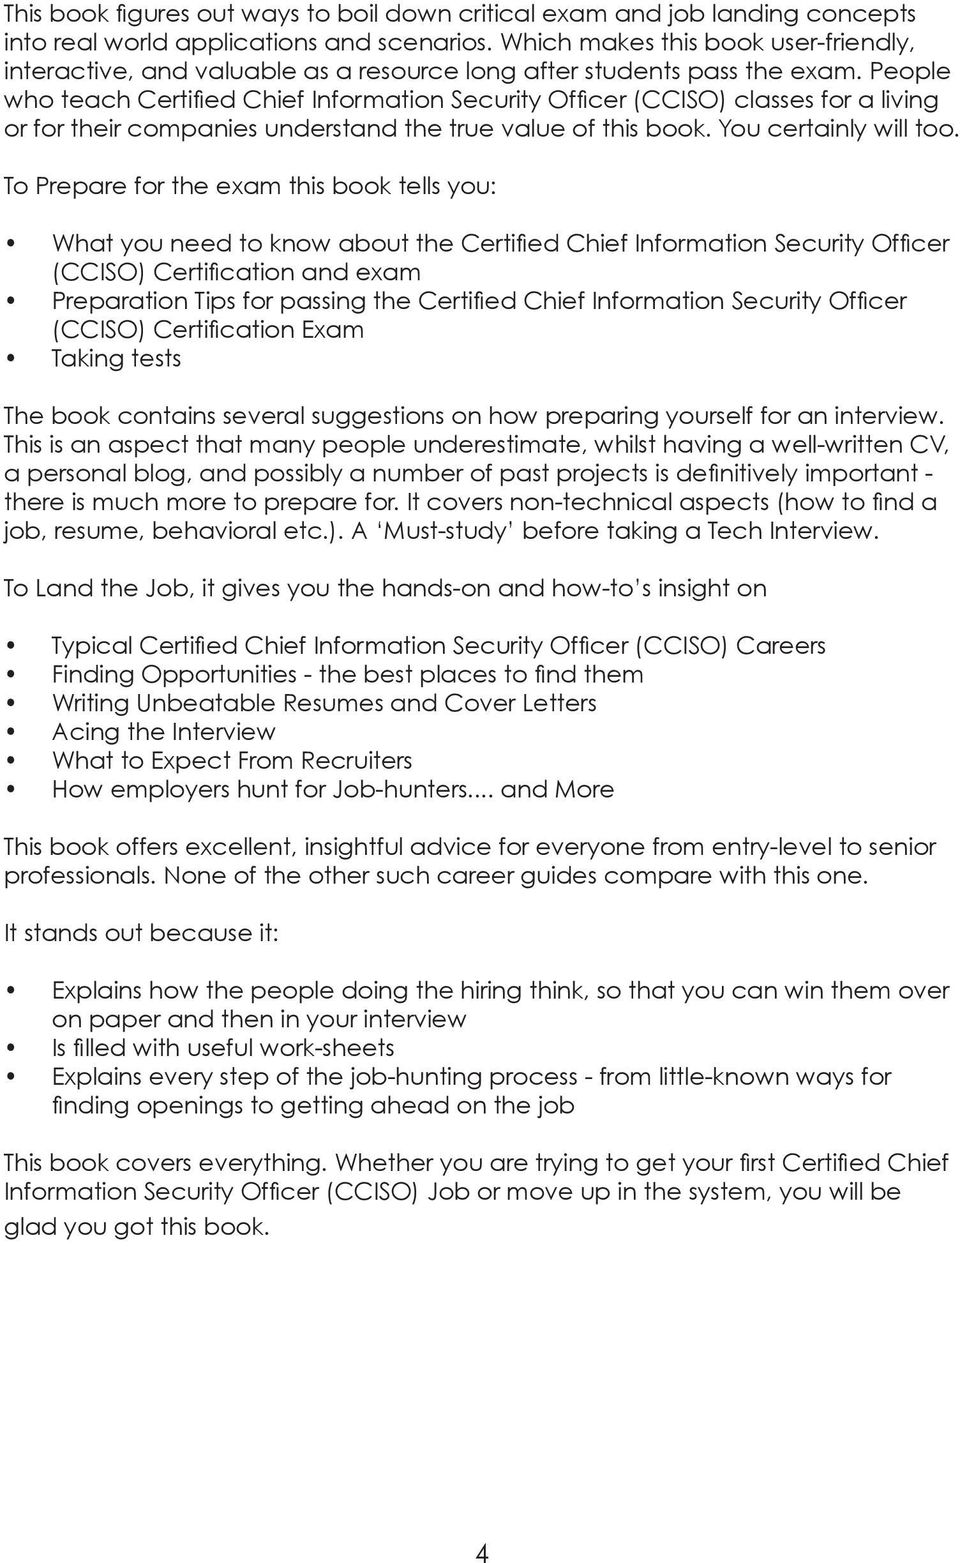 People Who Teach Certified Chief Information Security Officer CCISO Classes For A Living Or